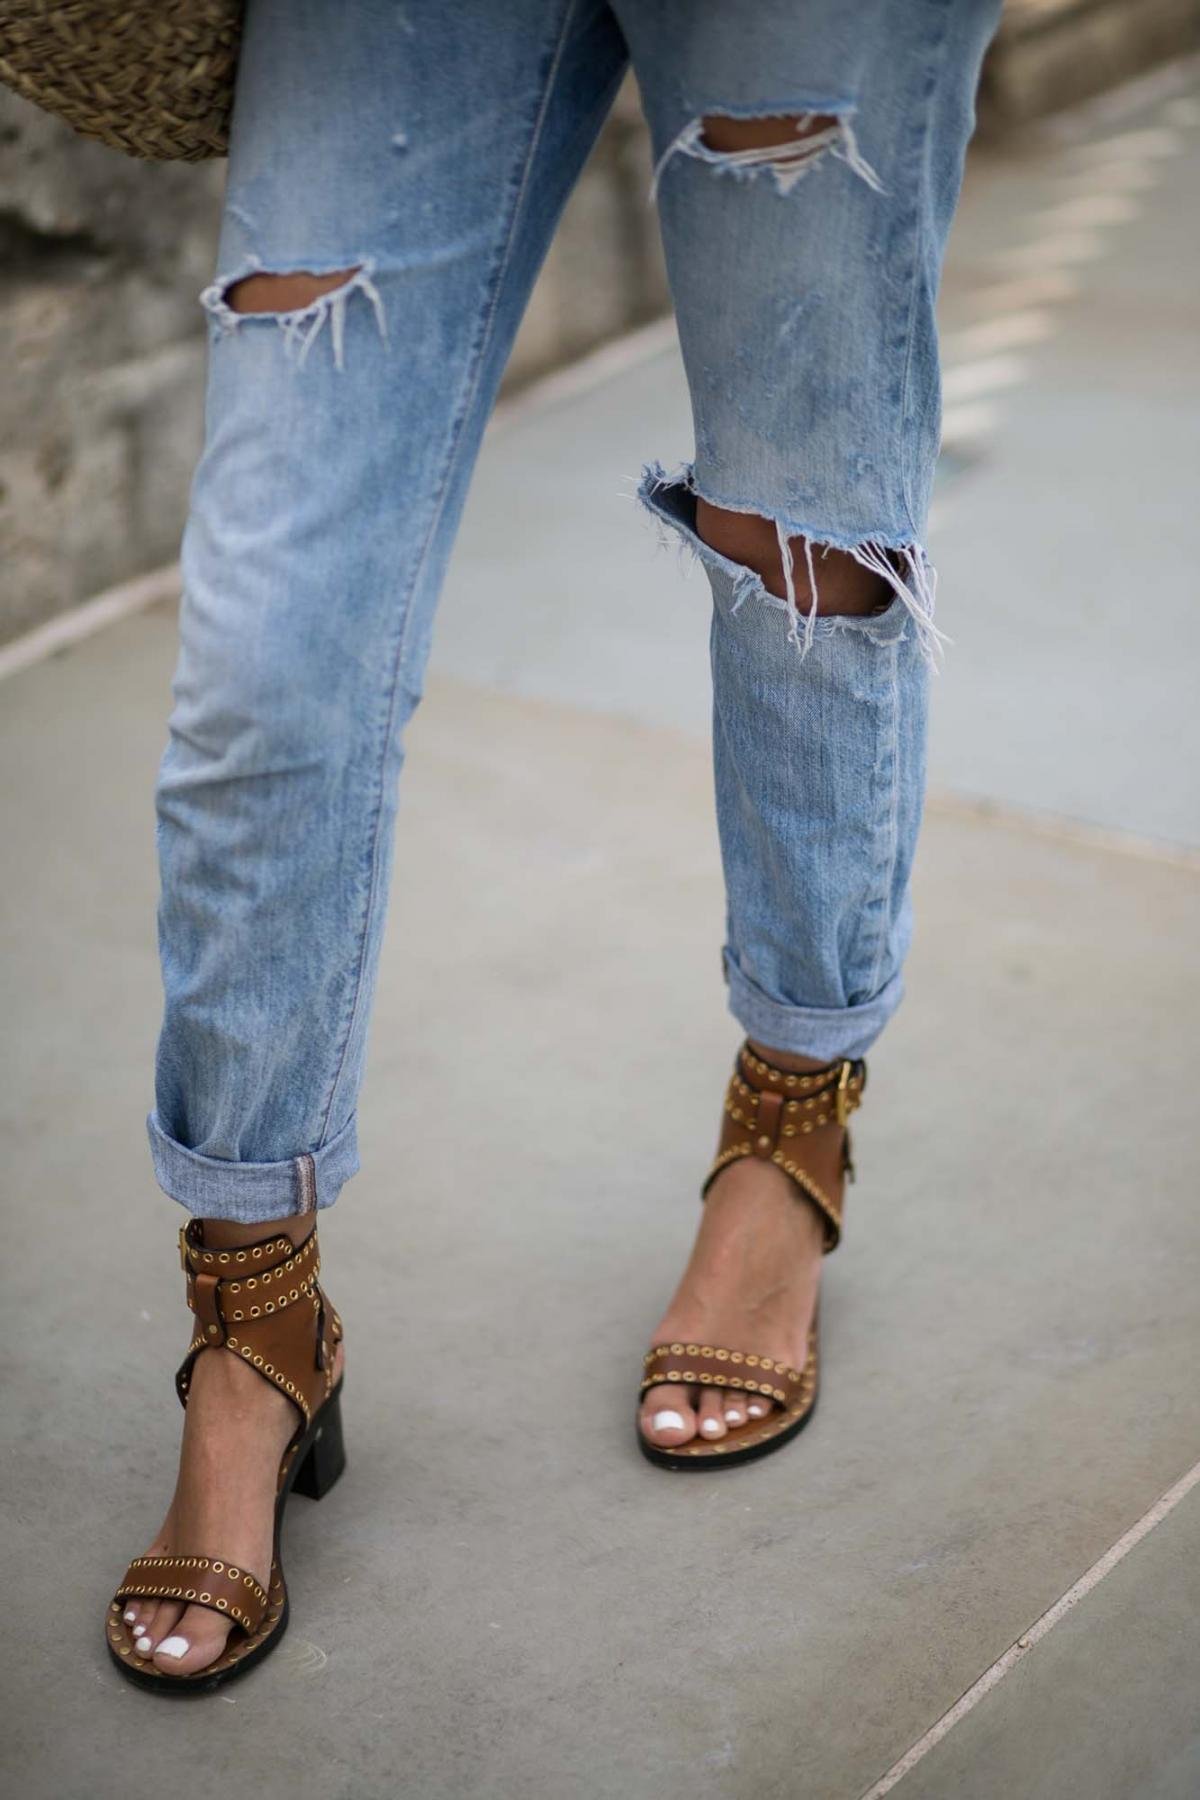 Isabel Marant tan studded sandals, white nails, white pedicure, summer toes, cuffed levis boyfriend jeans